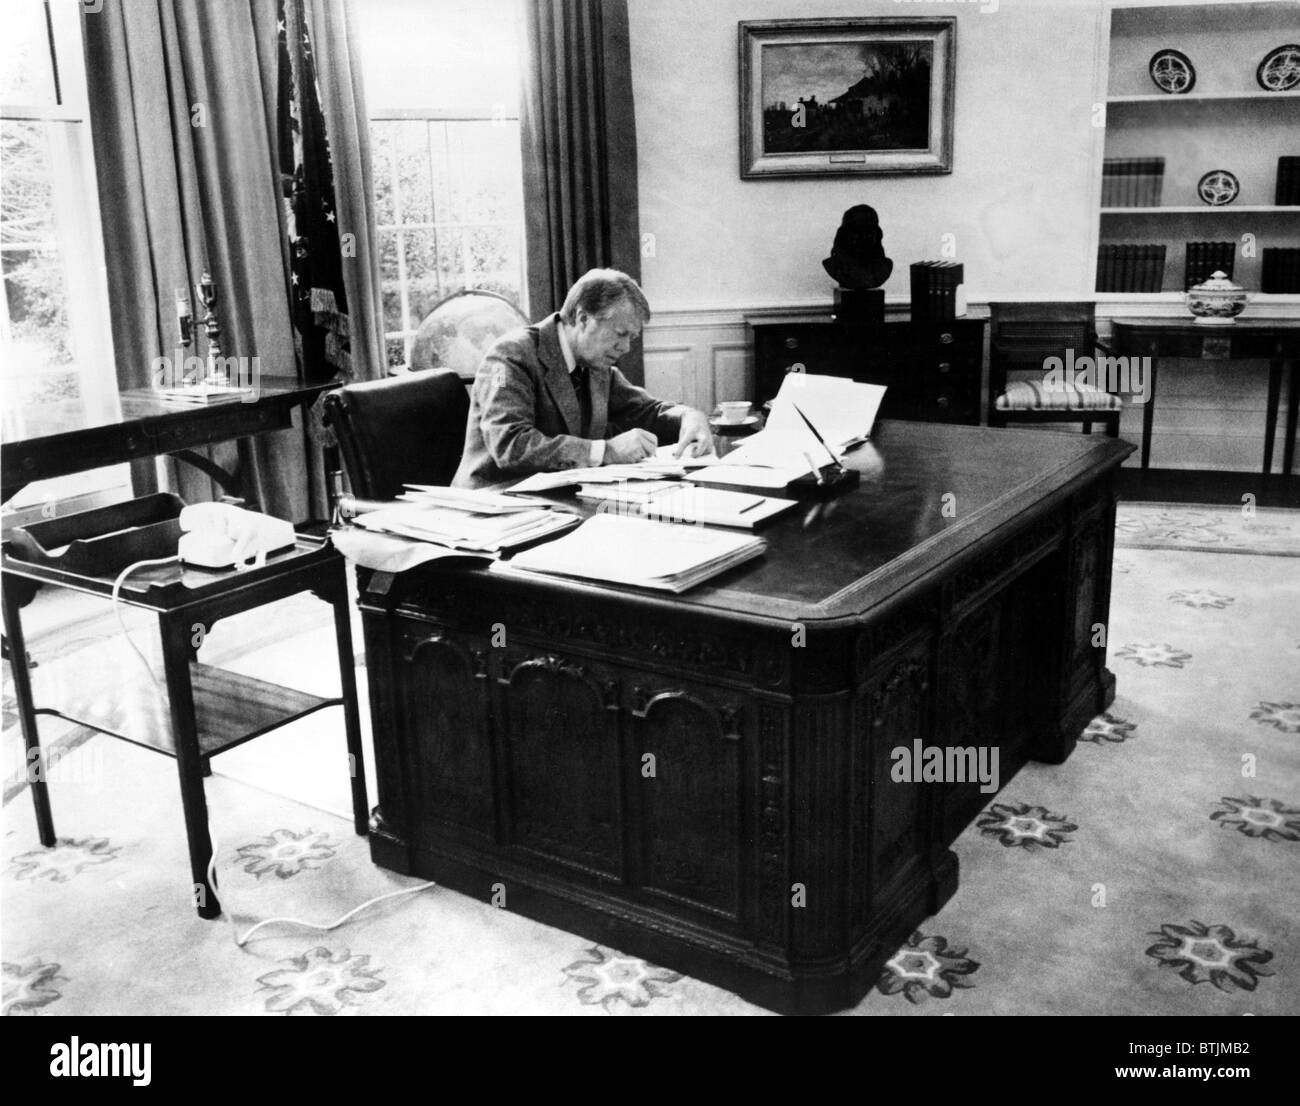 President Jimmy Carter At Work In The Oval Office Of The